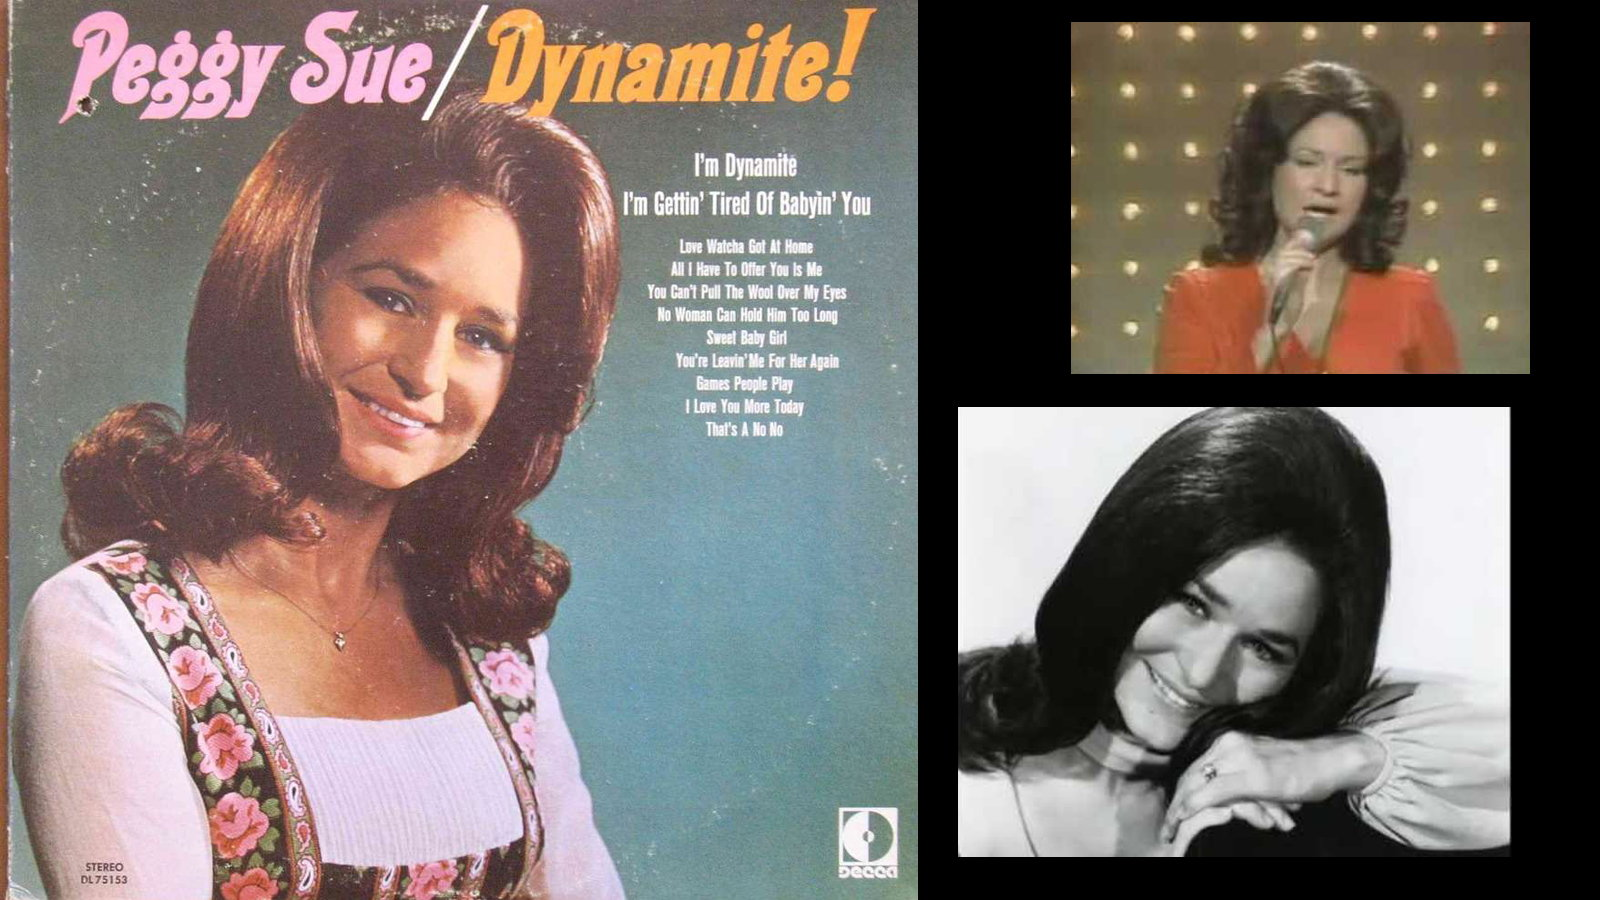 Peggy Sue Wright: I'm Dynamite